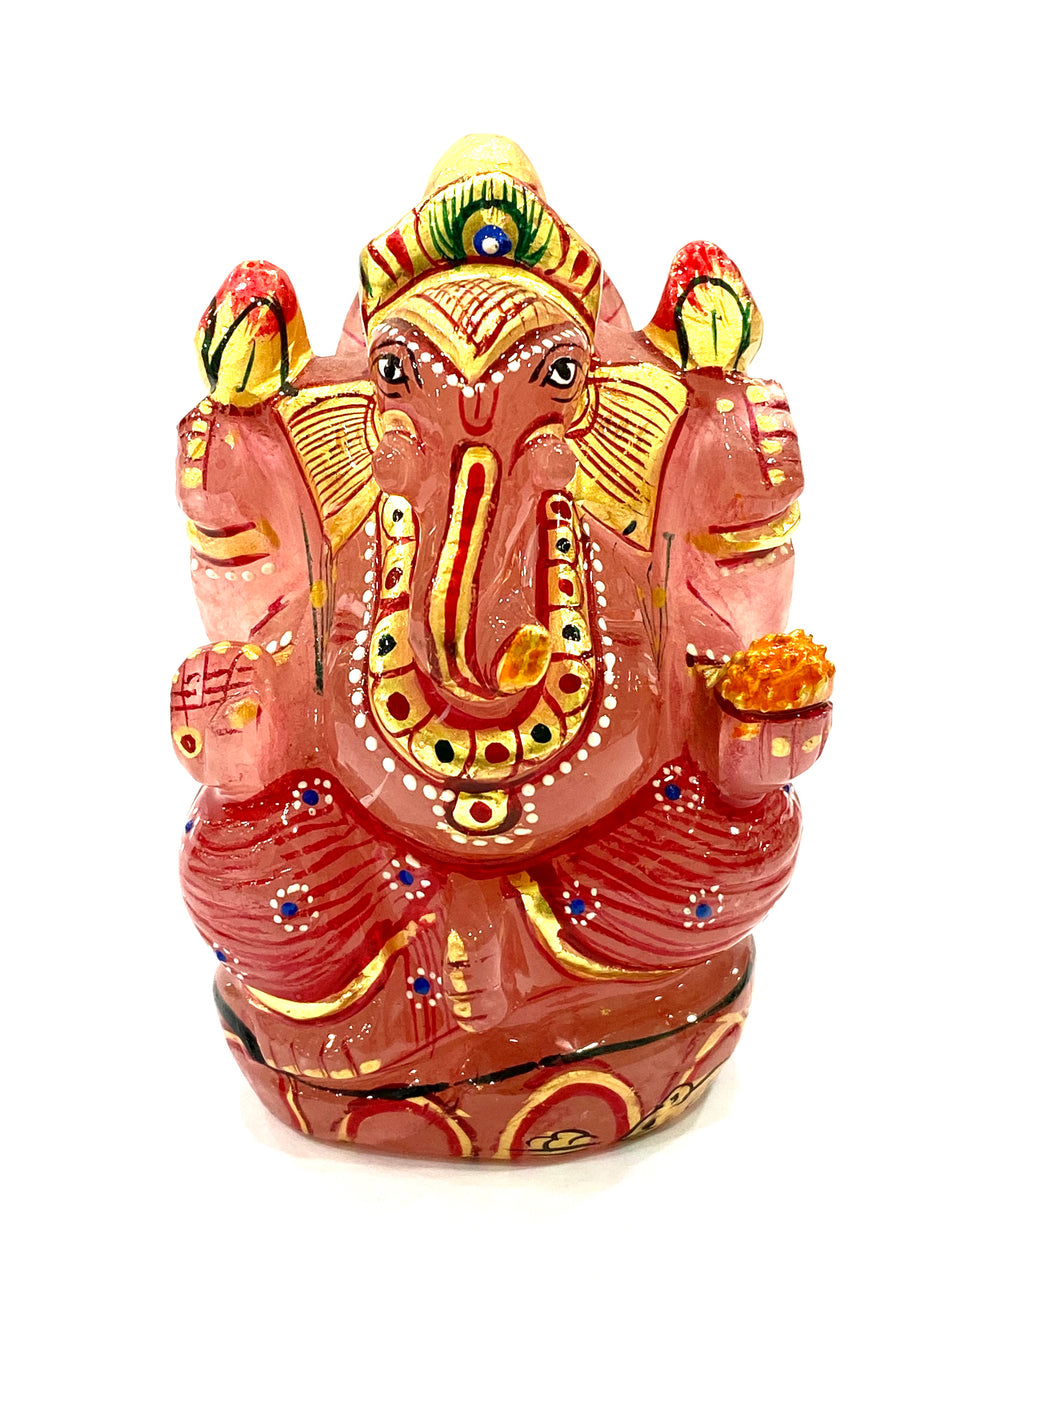 rose-quartz-gemstone-ganesha-idol-1